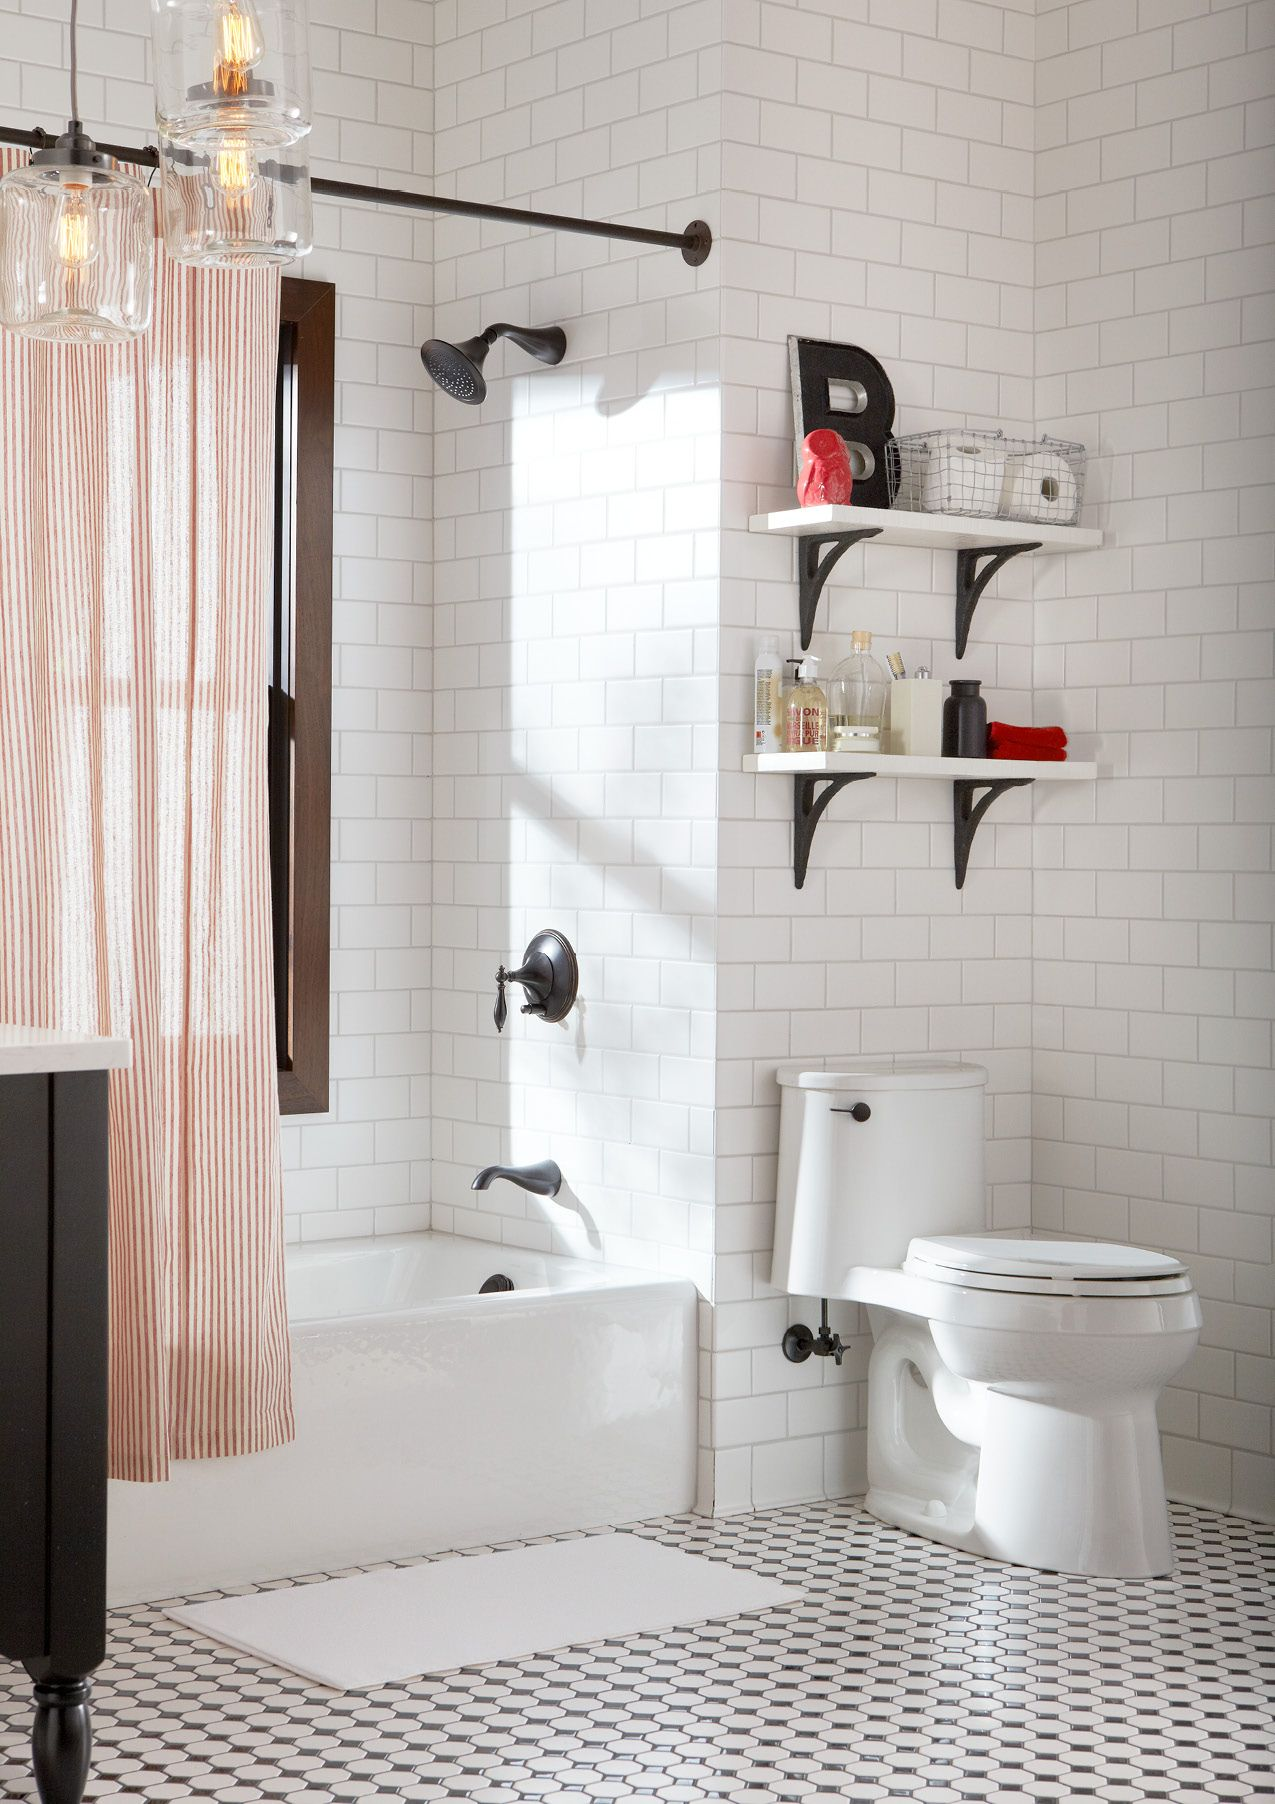 kohler alcove apron bathtub product supply with soaker tub k integral bellwether plumbing and standard